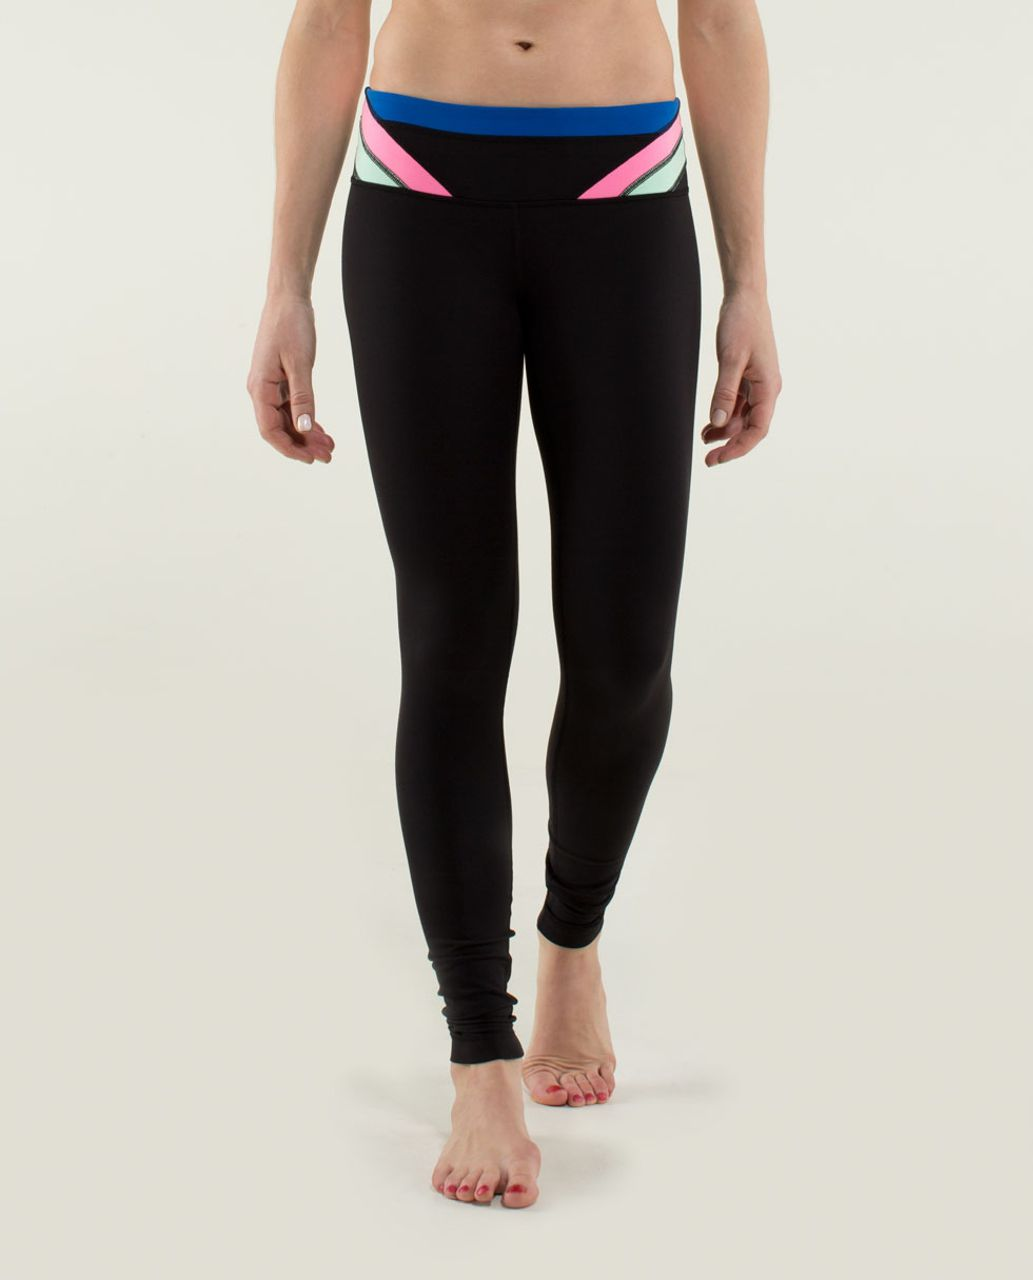 Lululemon Wunder Under Pant *Full-On Luon - Black / Quilt Winter 13-16